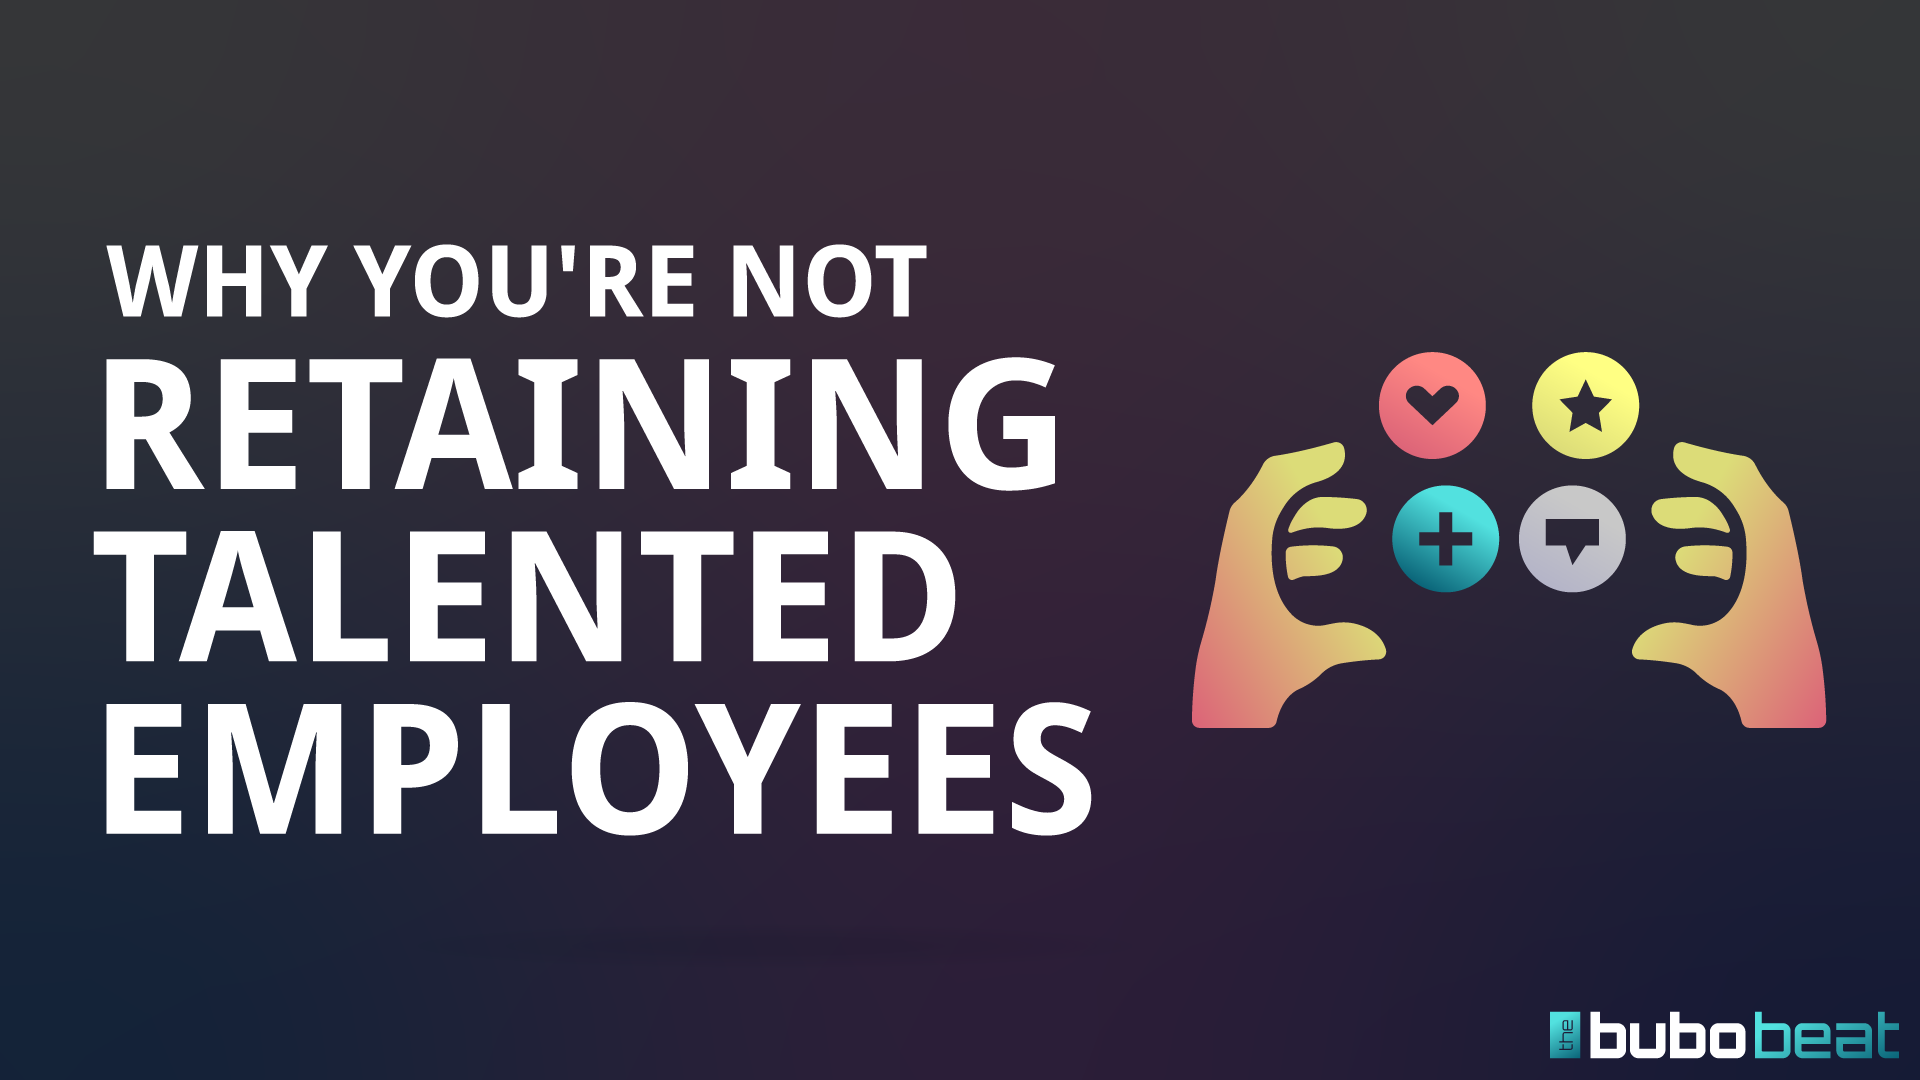 Why you're not retaining talented employees